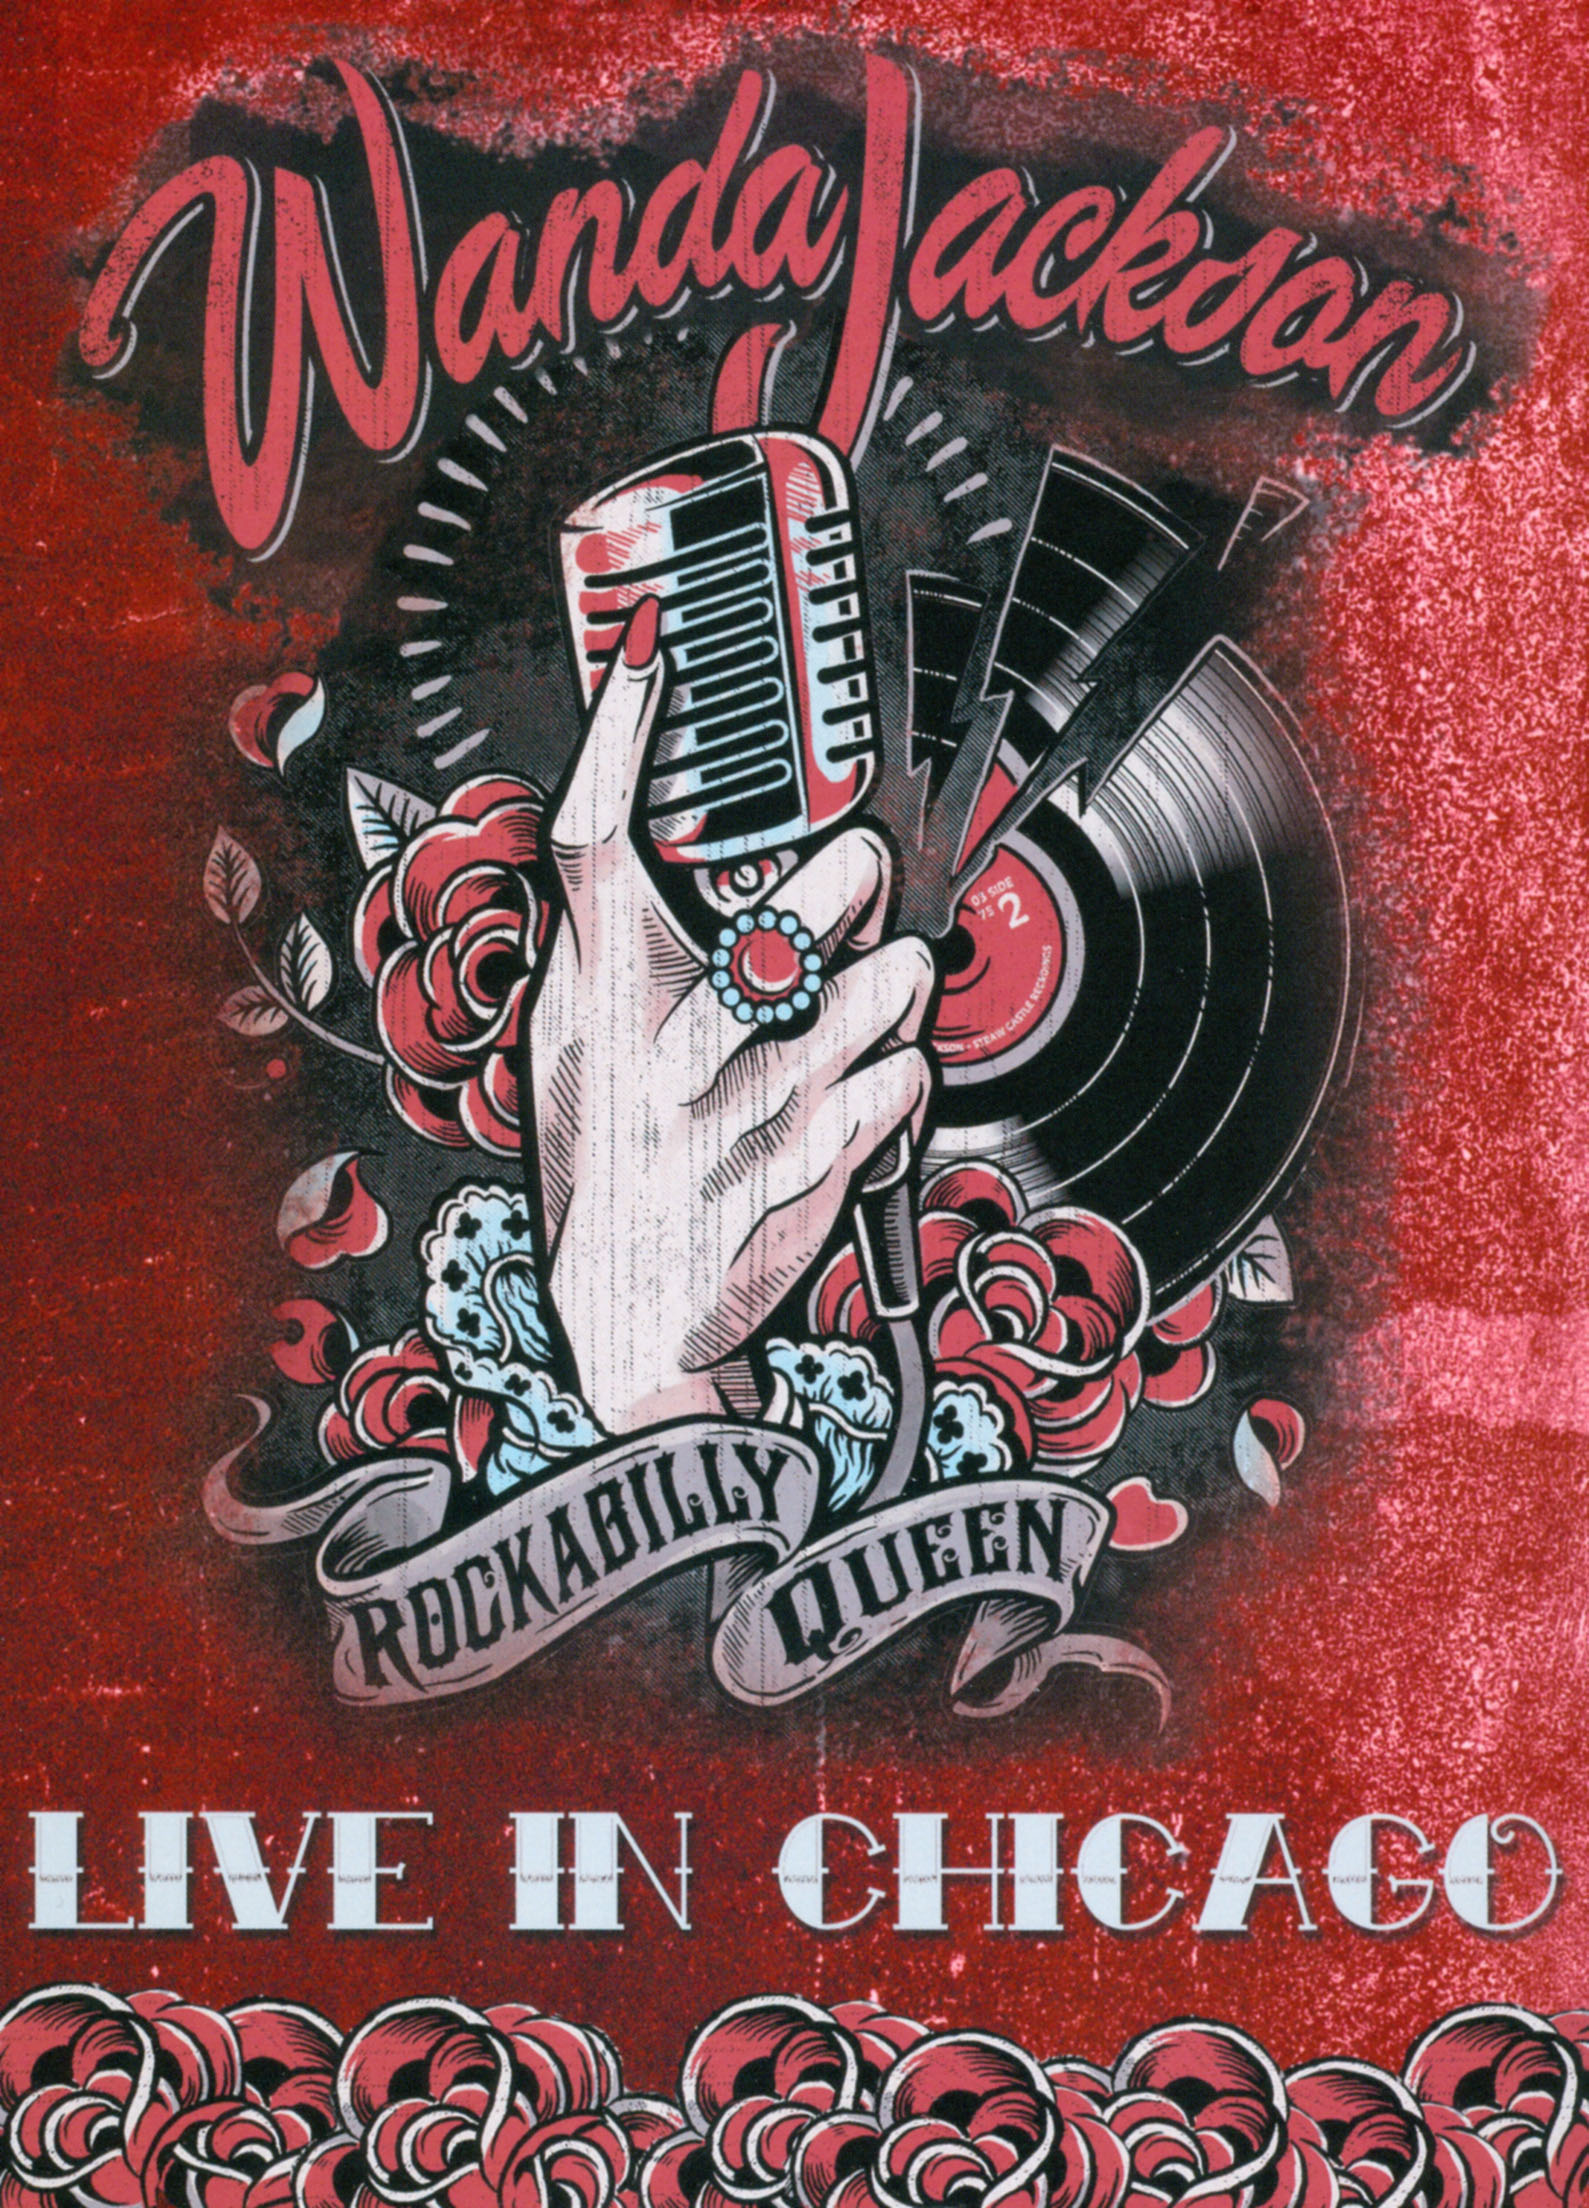 Wanda Jackson: Live in Chicago